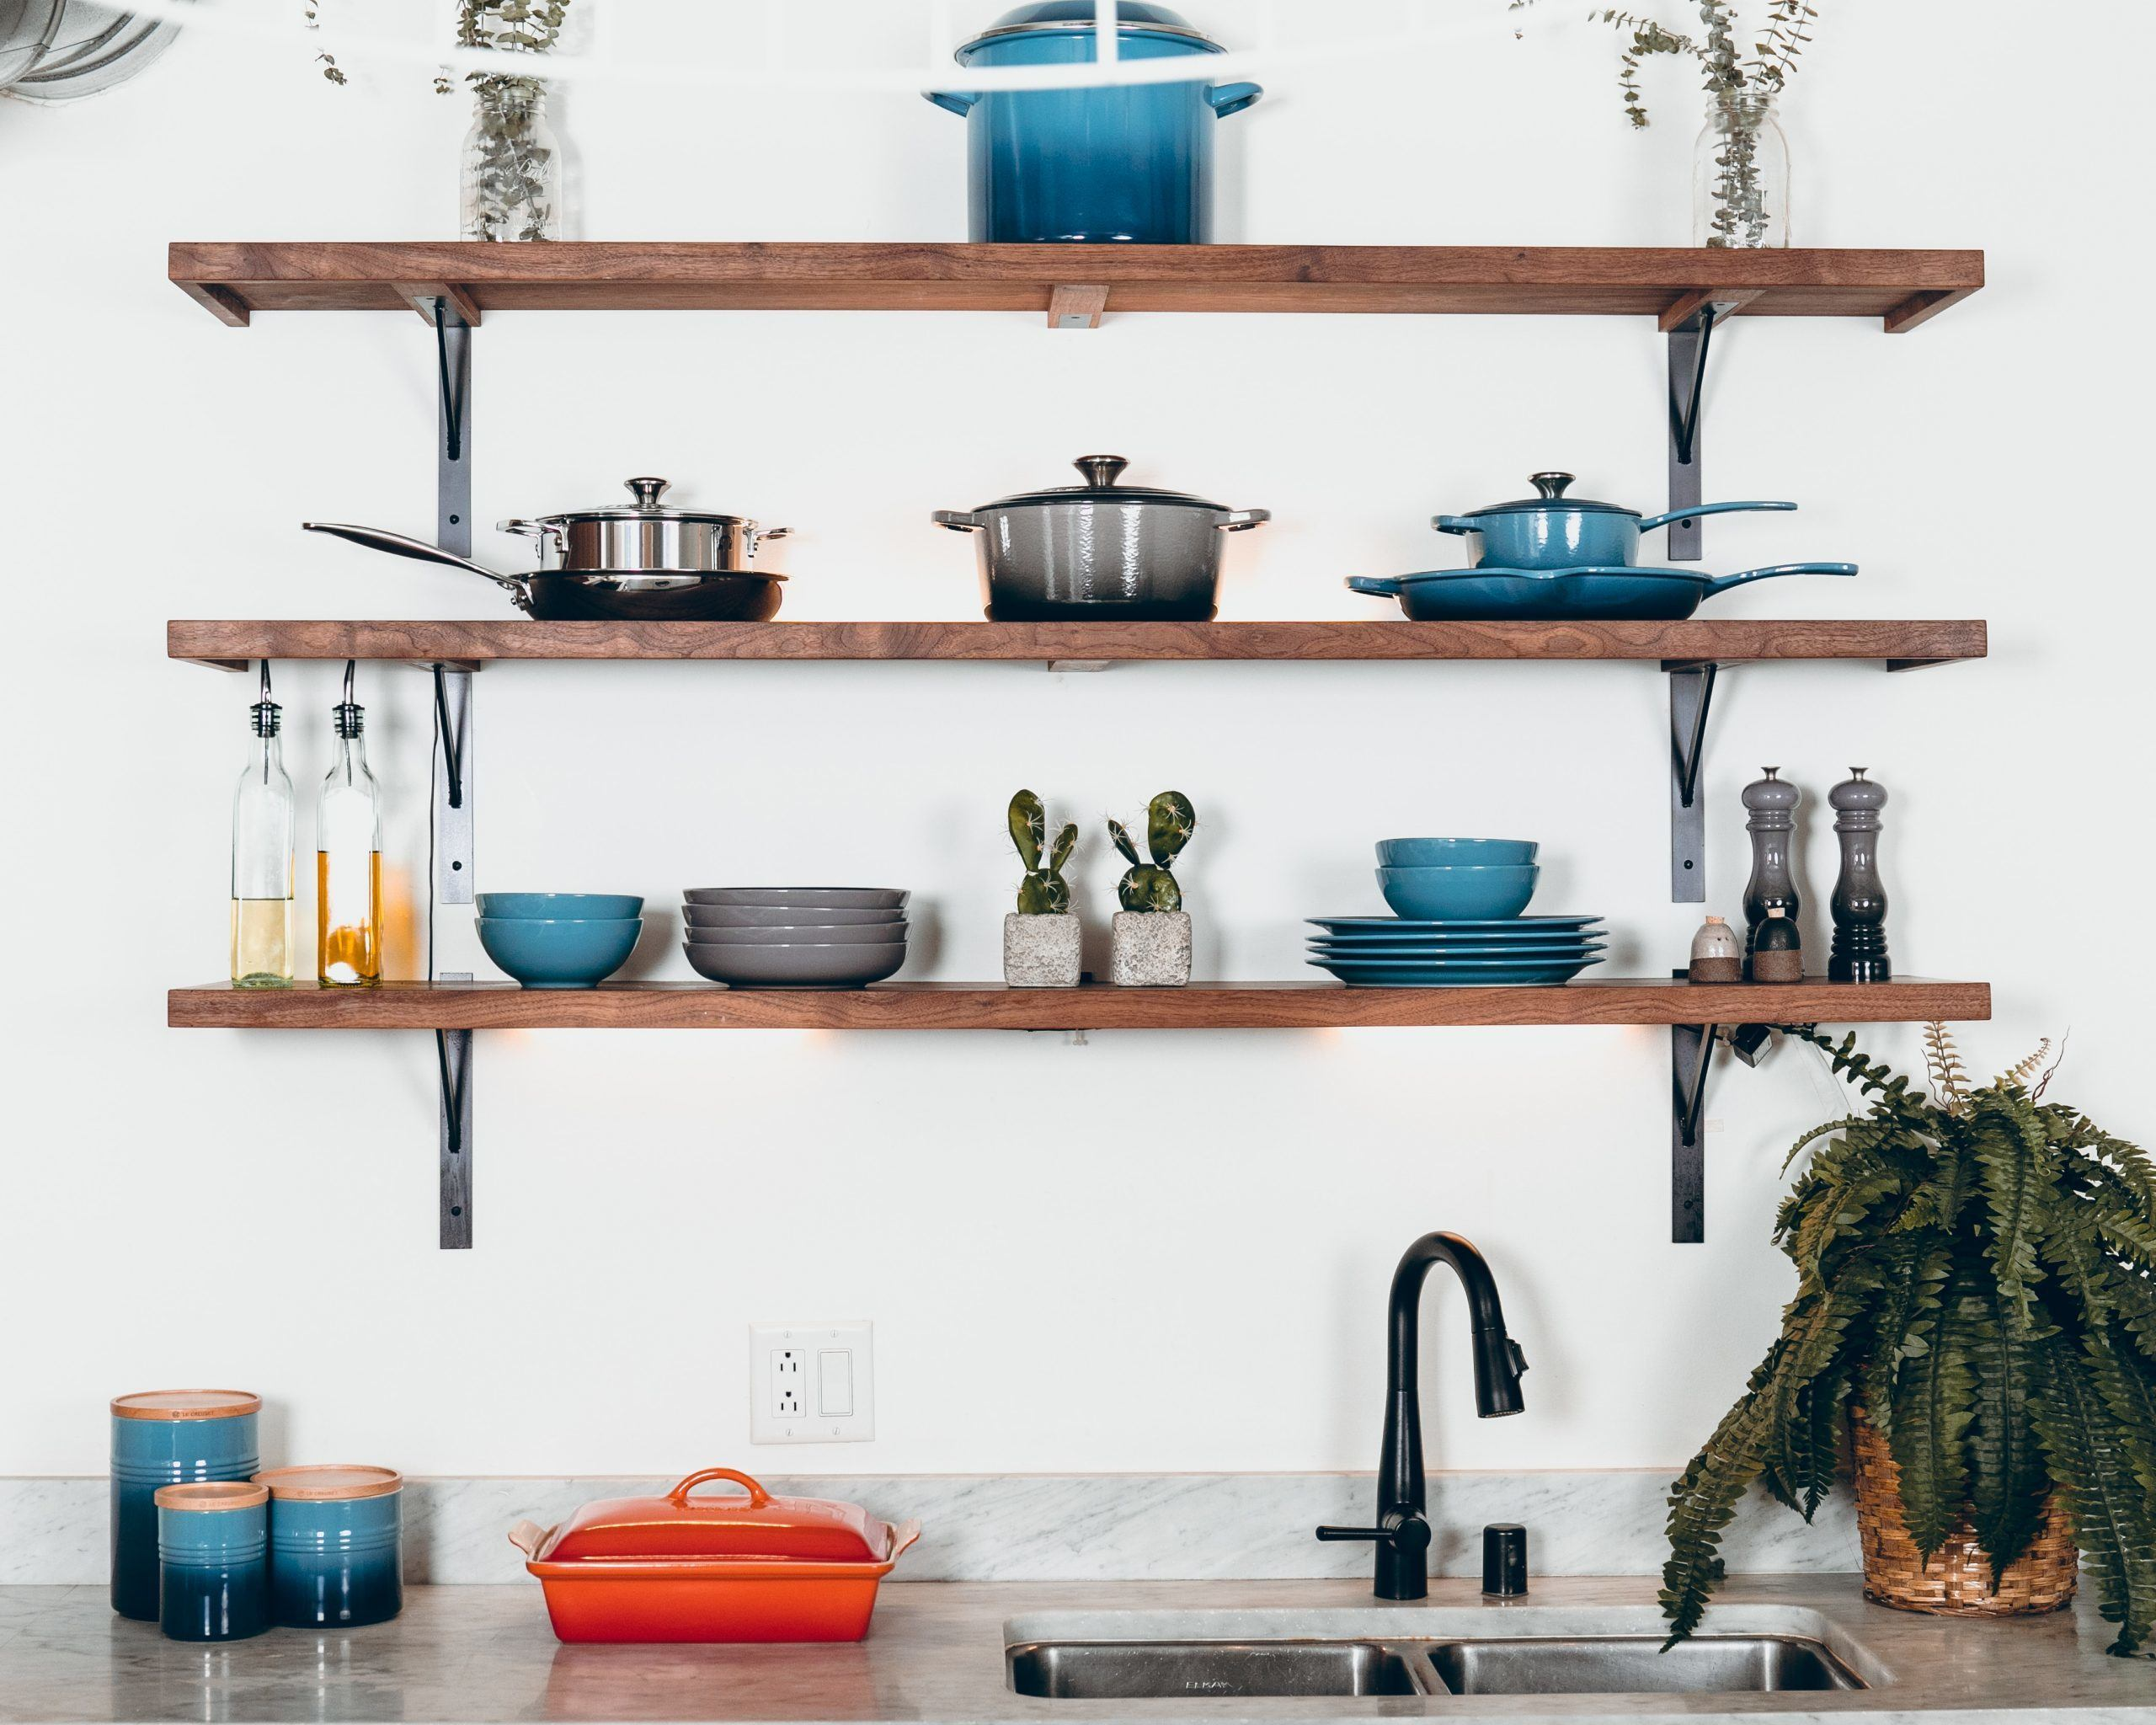 the ceramic cookware on wooden shelf